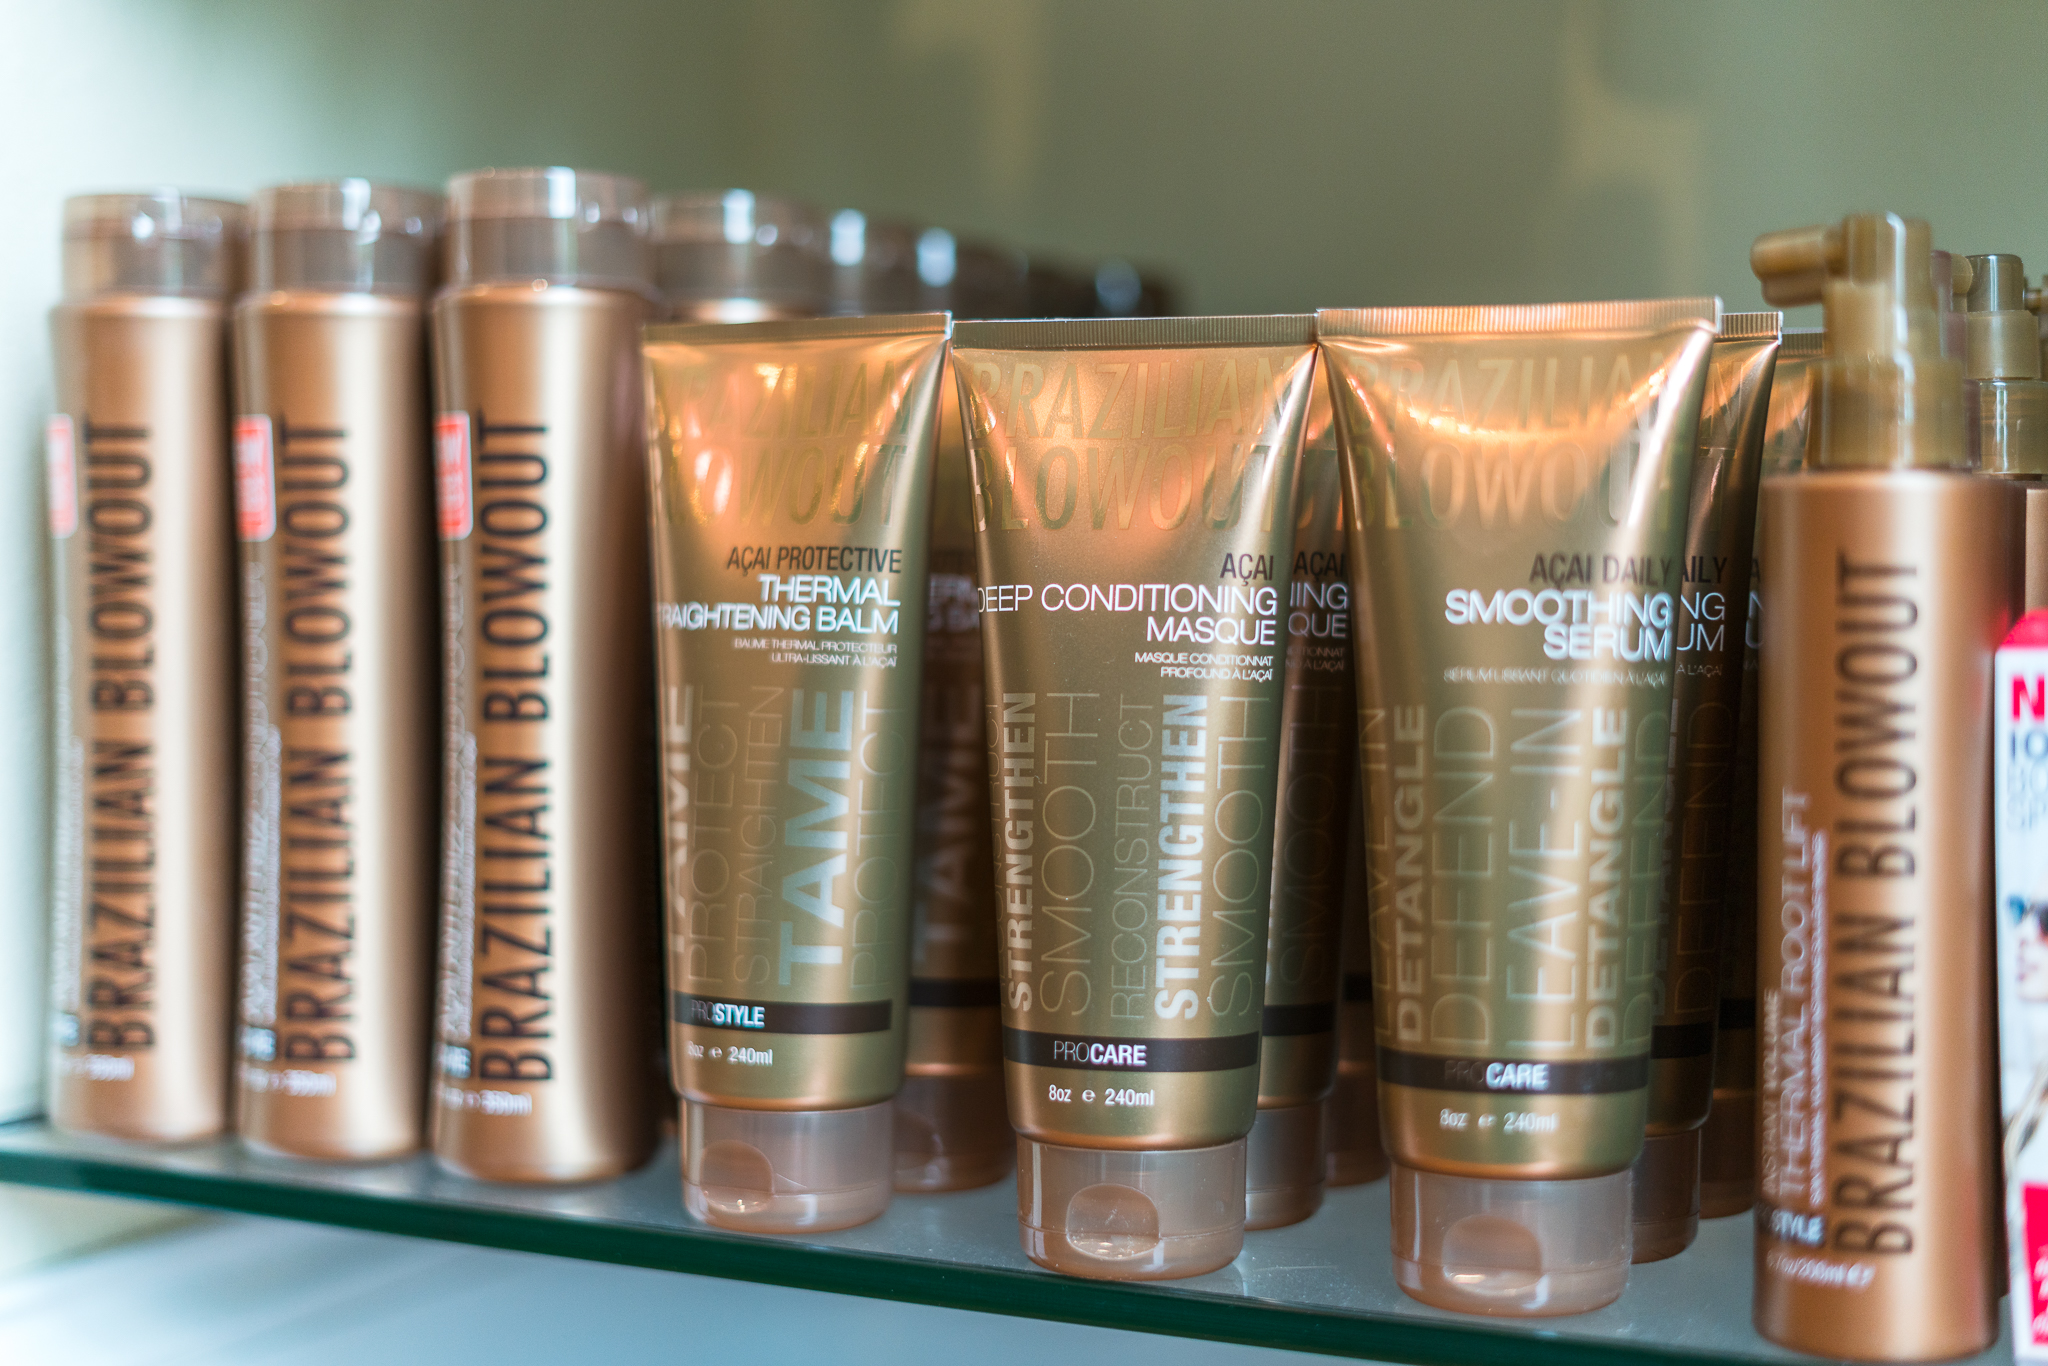 Brazilian Blowout - Brazilian Blowout products increase the longevity of your Brazilian Blowout smoothing system. These products enhance the effects of your in-salon treatment! Even if you haven't had a Brazilian Blowout treatment these products can help tame your frizz and allow for easier styling.